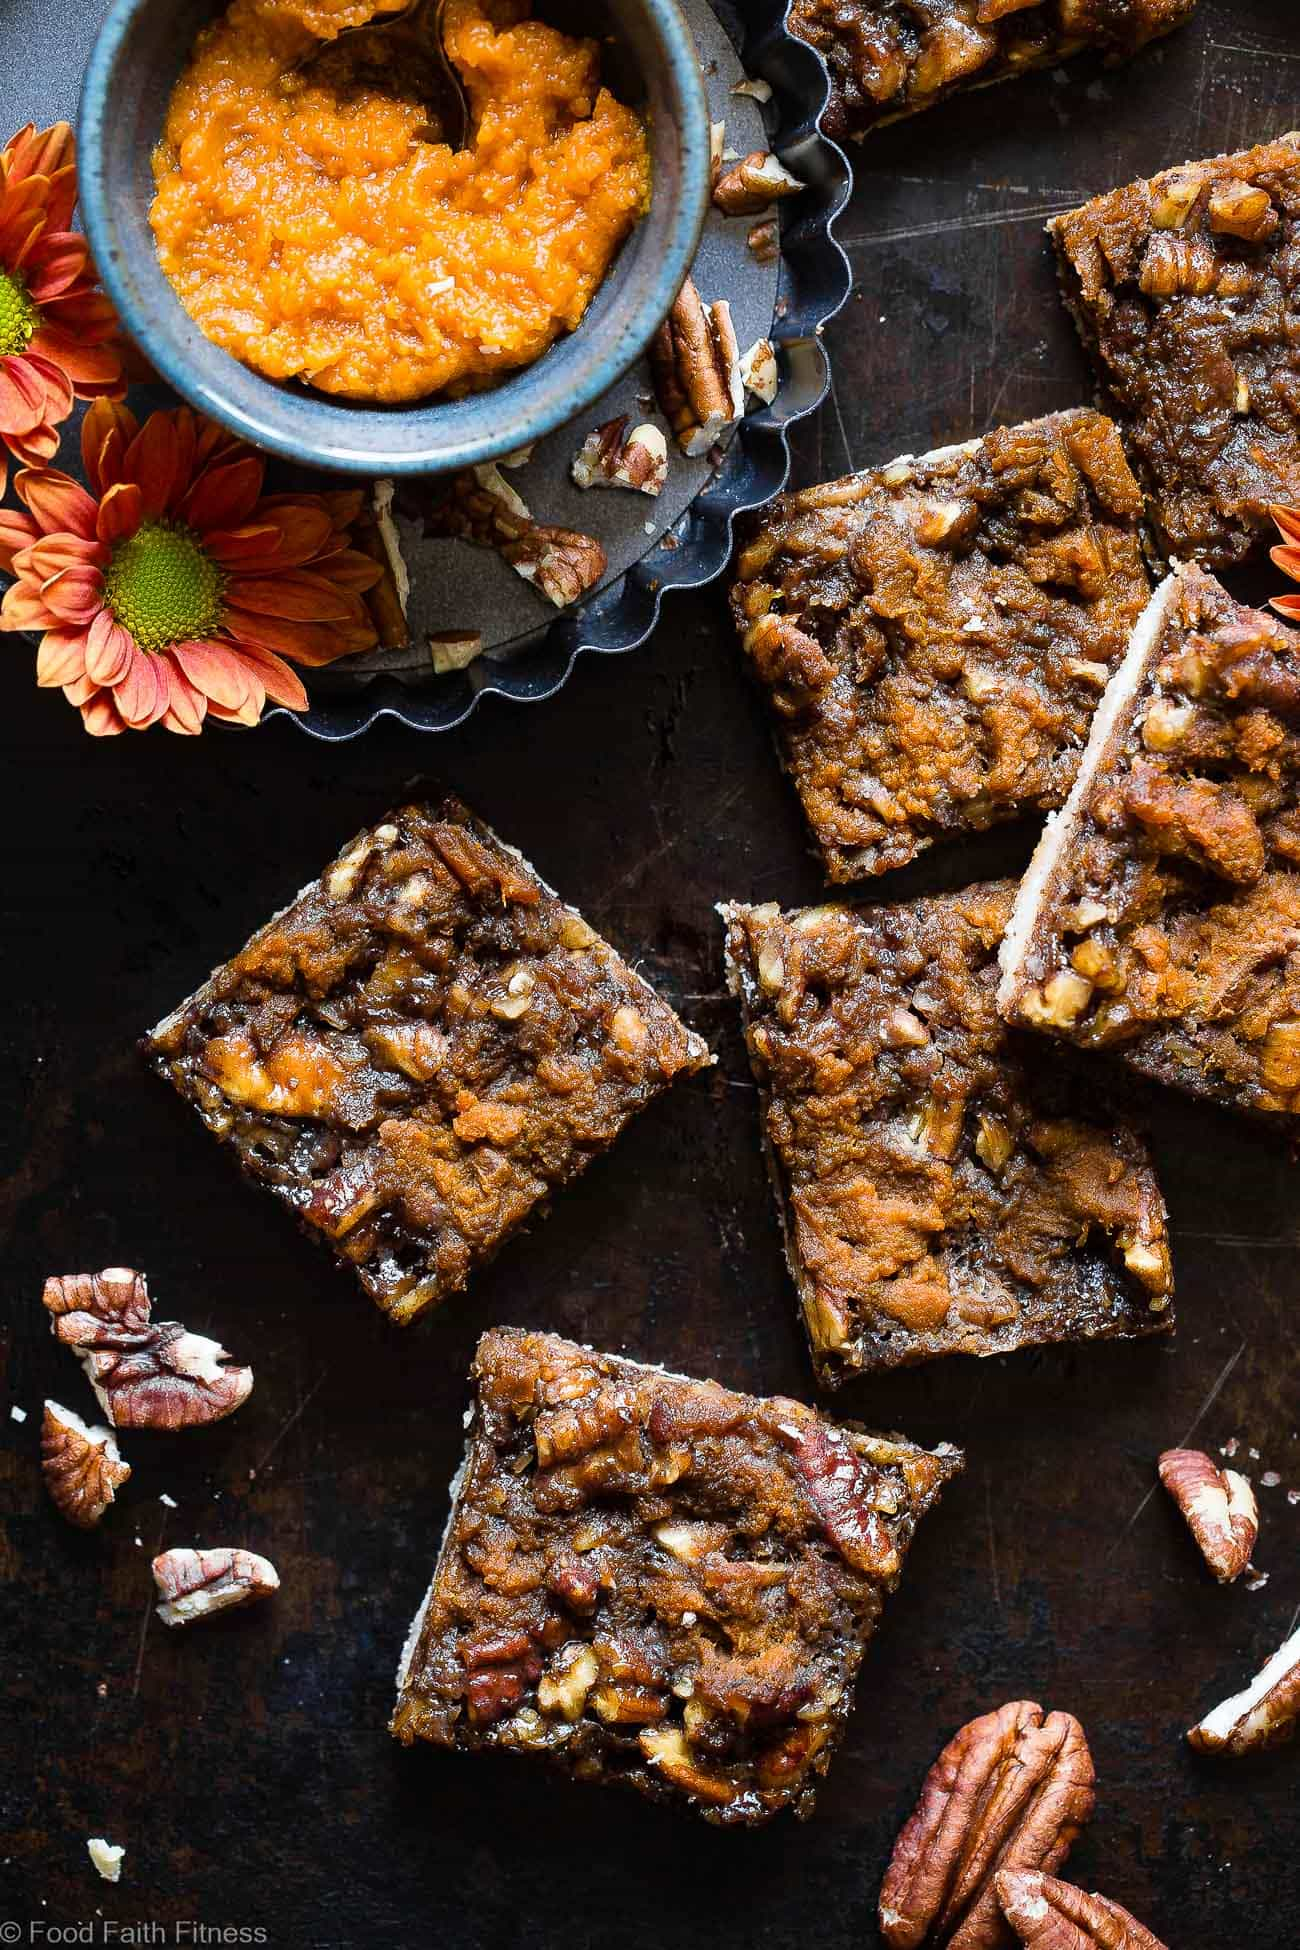 Pumpkin Spice Vegan Pecan Pie Bars - These easy, healthy pecan pie bars are only 8 ingredients and have a pumpkin spice spin! A gluten/grain/dairy/egg free dessert for Thanksgiving that's paleo friendly! | Foodfaithfitness.com | @FoodFaithFit